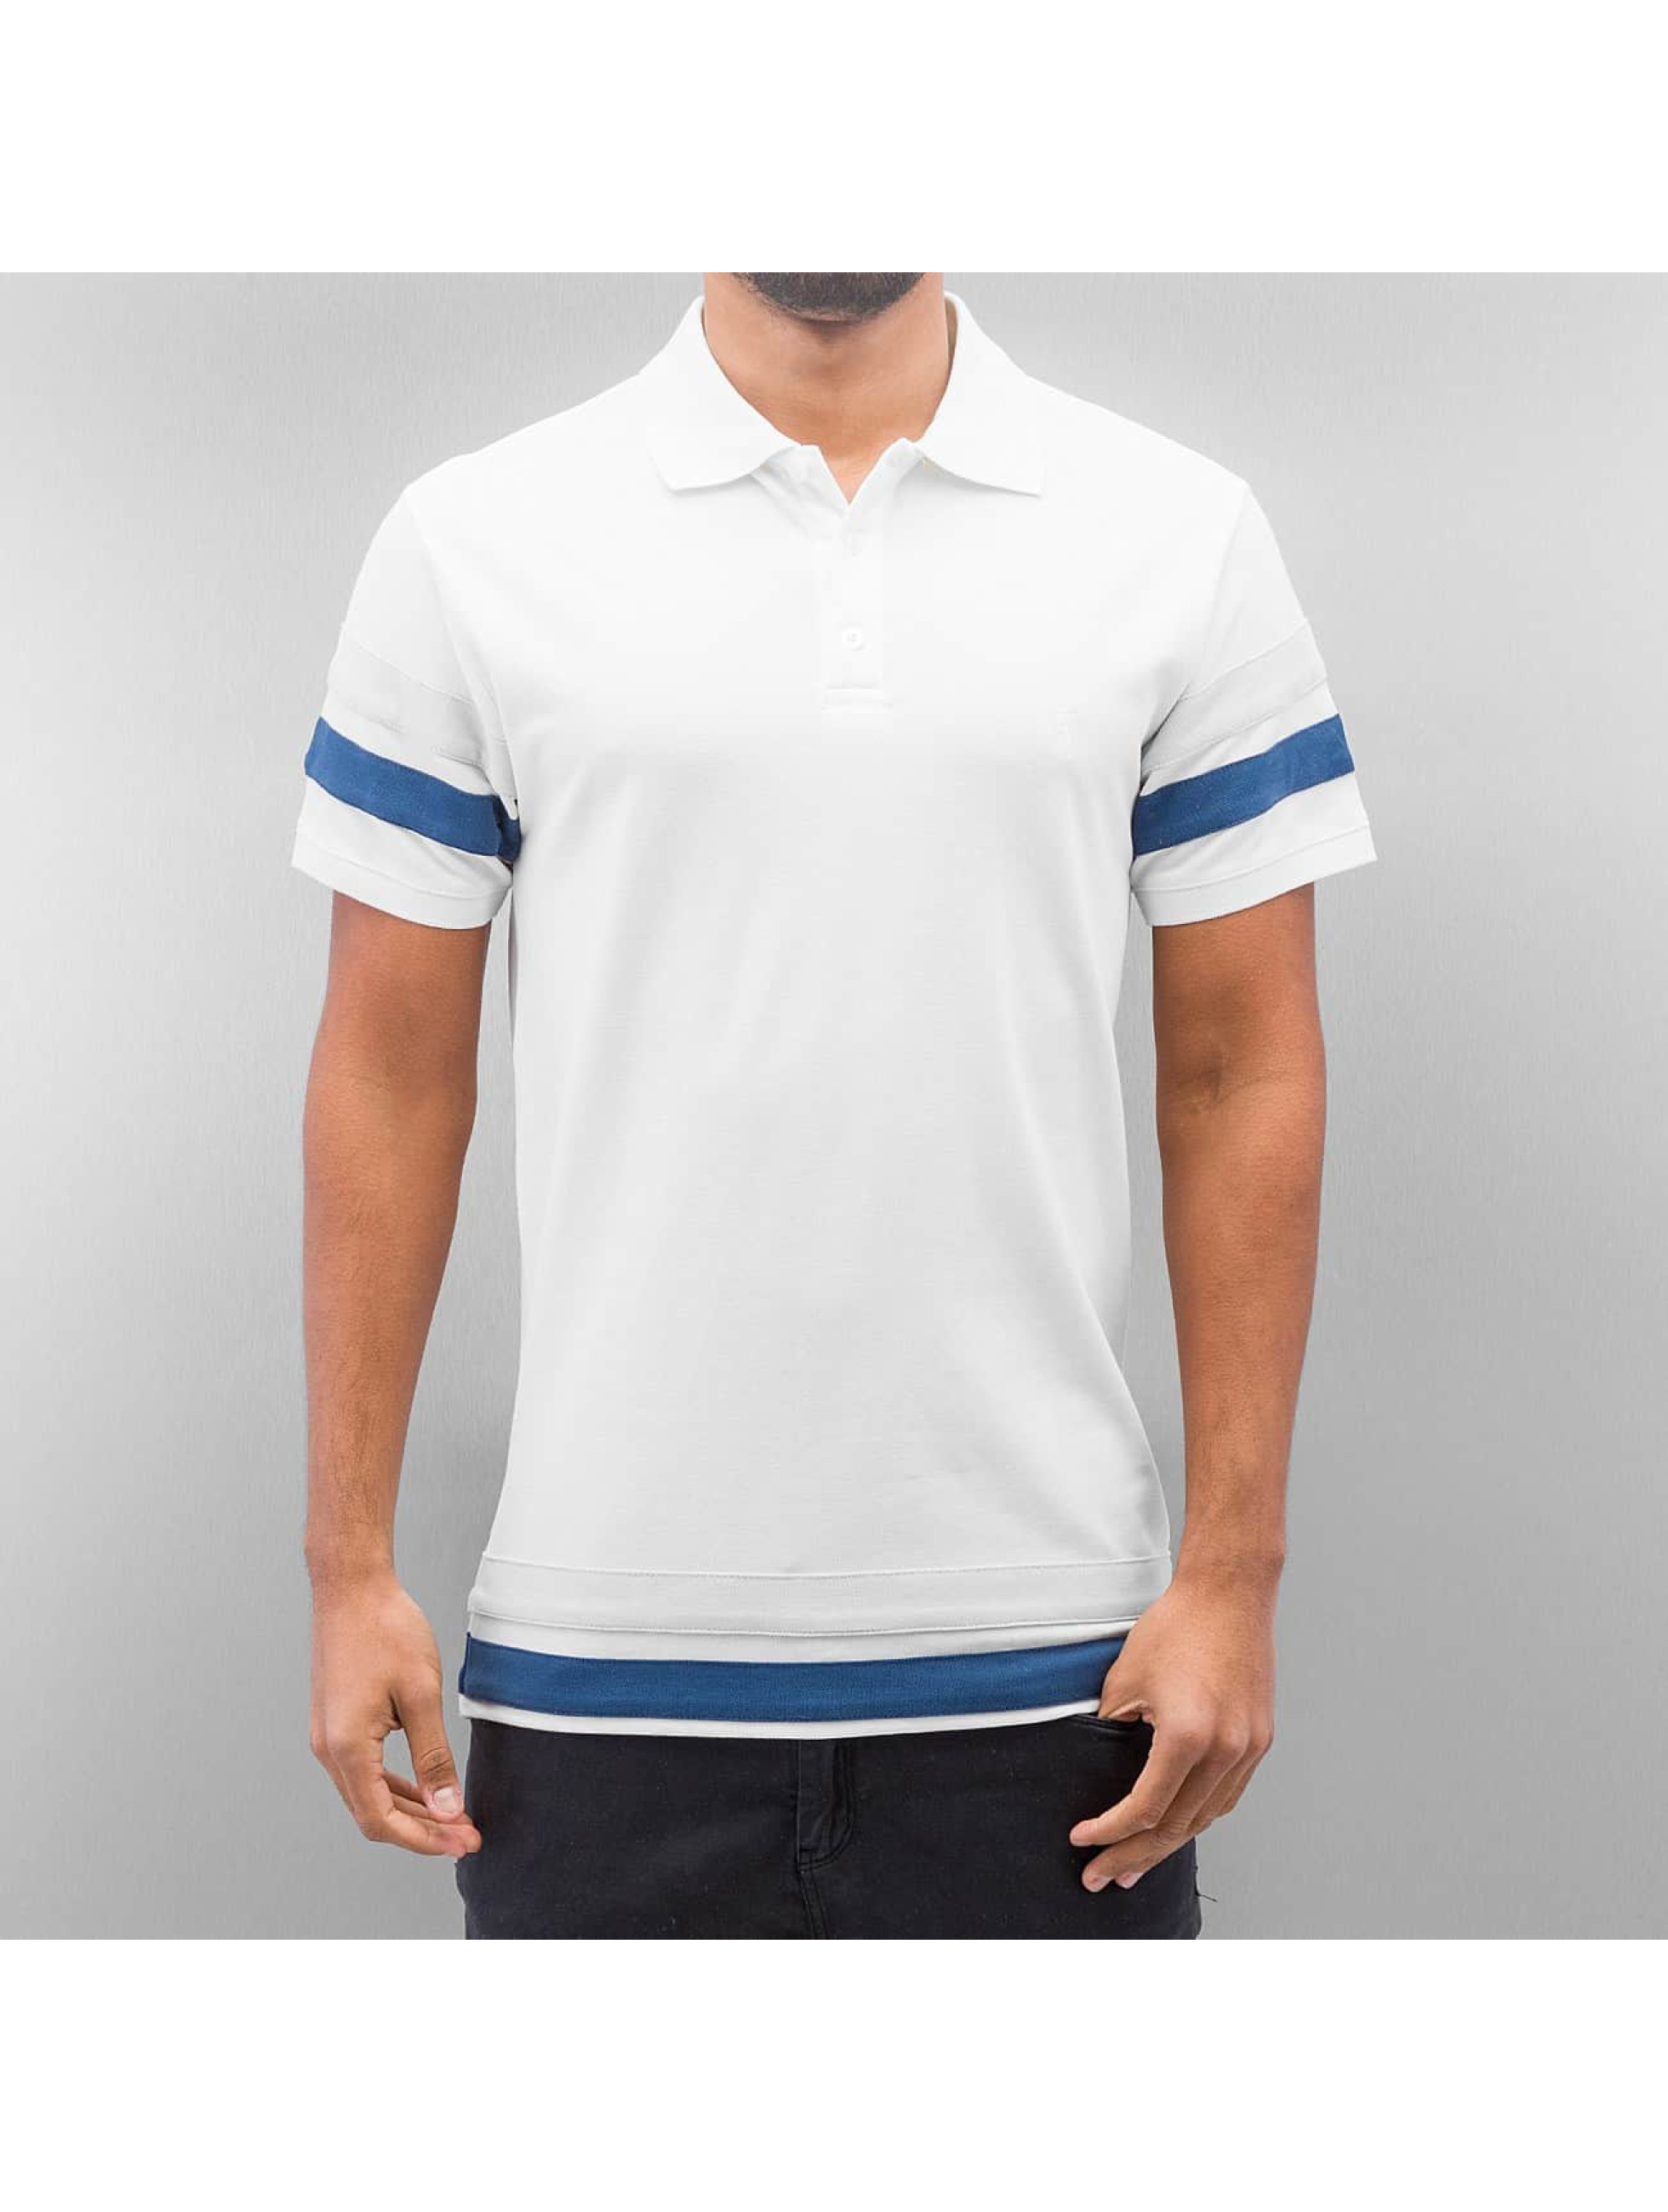 Cazzy Clang / Poloshirt Migge in white S